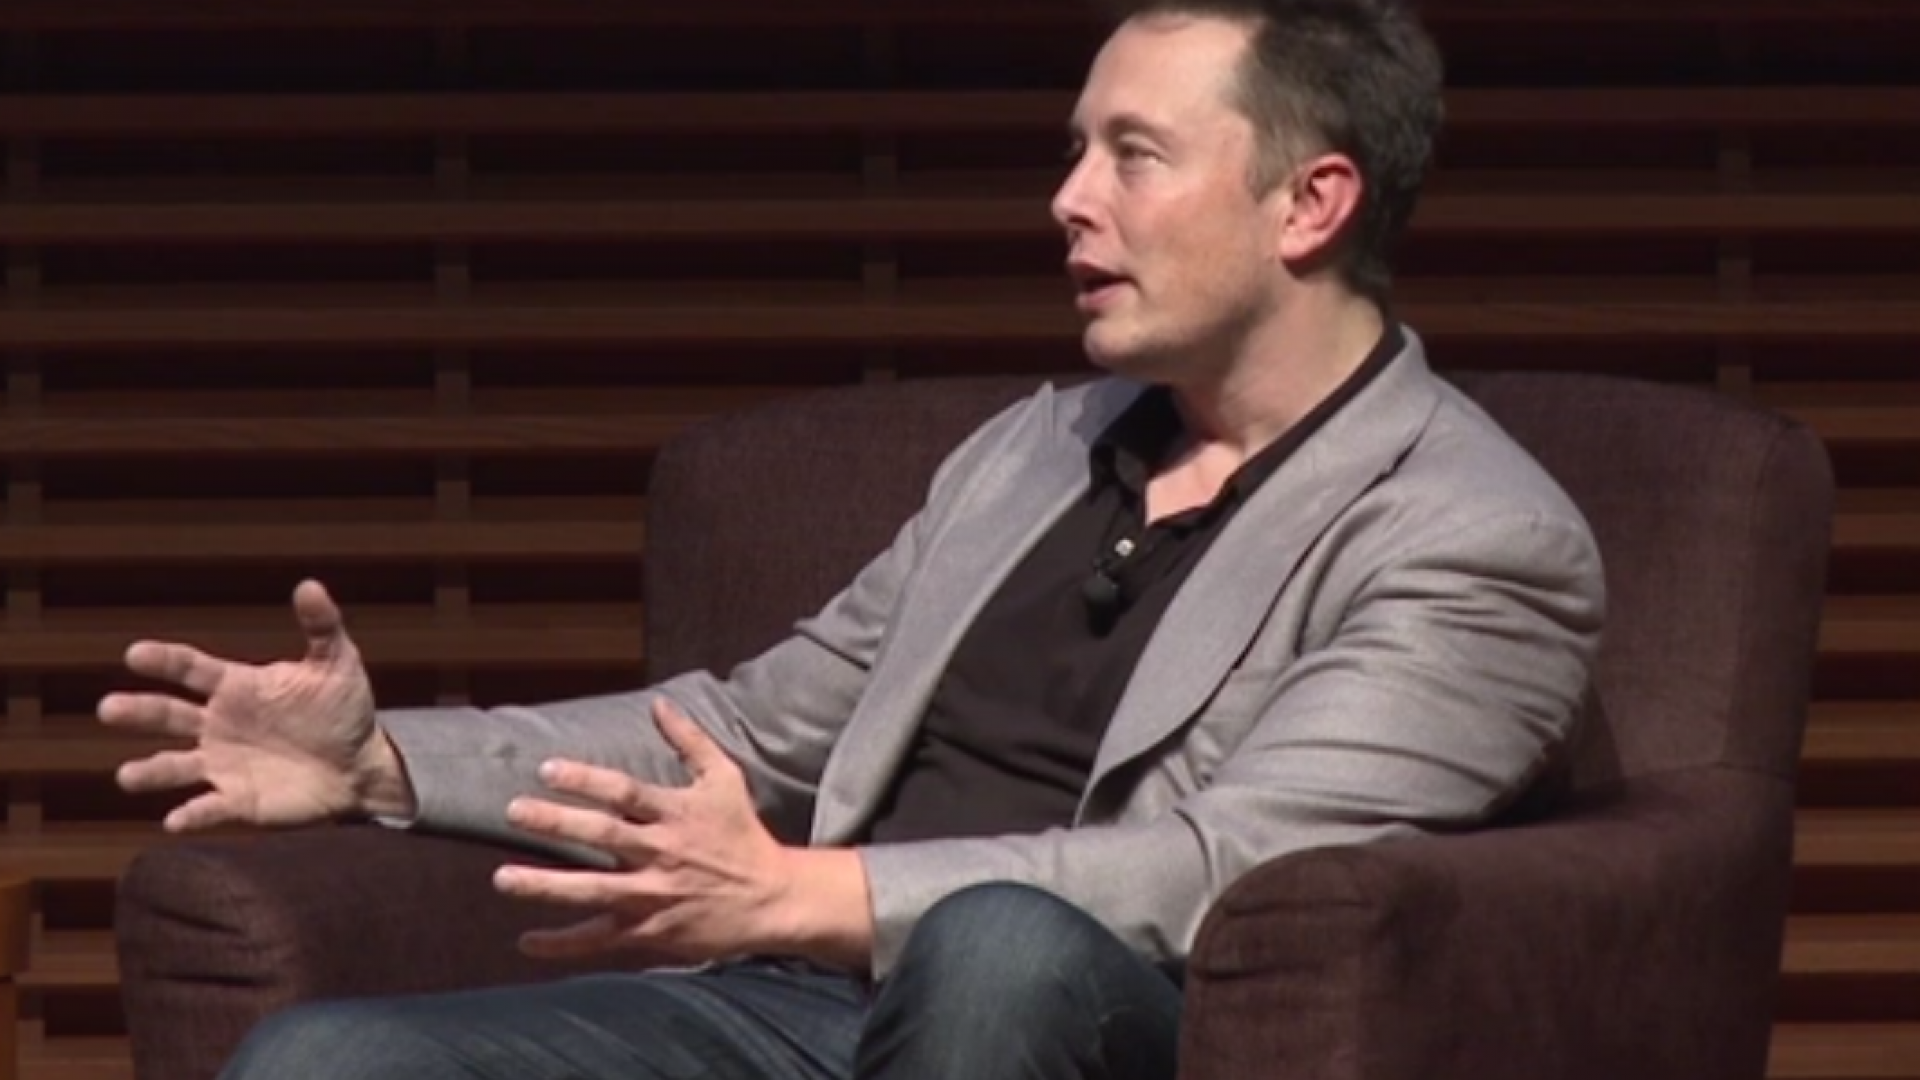 Elon Musk: 3 Opportunities That Will Impact Humanity for the Better